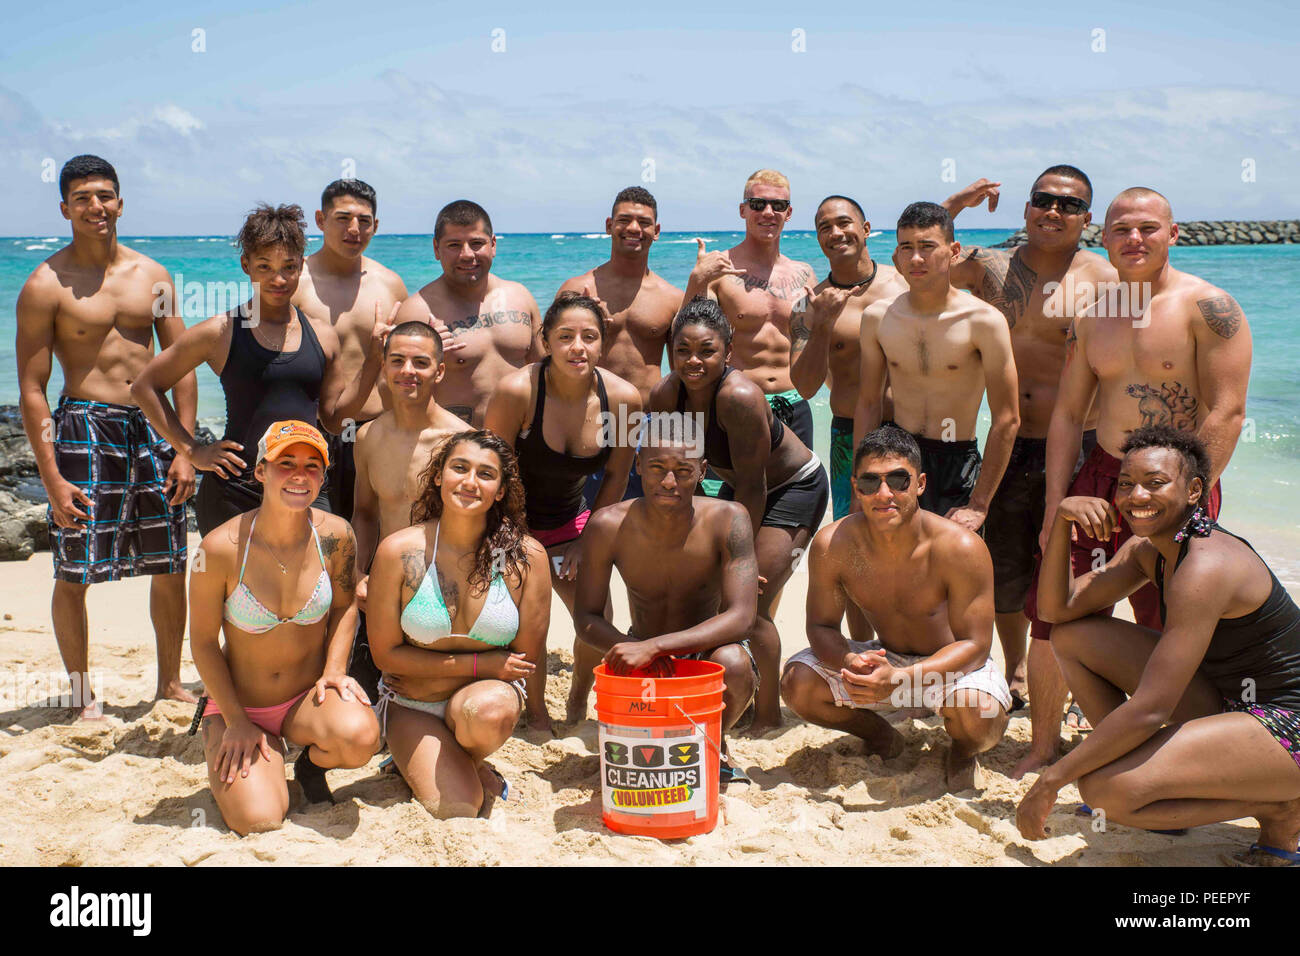 Marines and Sailors pose for a photo after volunteering with non-profit organization, 808 Cleanups, at the Makai Research Pier August 8, 2015. The service members collected 136 pounds of marine debris that was comprised of things such as fishing line, metal, plastic and glass from the waters surrounding the pier and on the beach. Participating in event such as this, give service members the opportunity to give back to the local community. (U.S. Marine Corps photo by Cpl. Brittney Vito/Released) - Stock Image